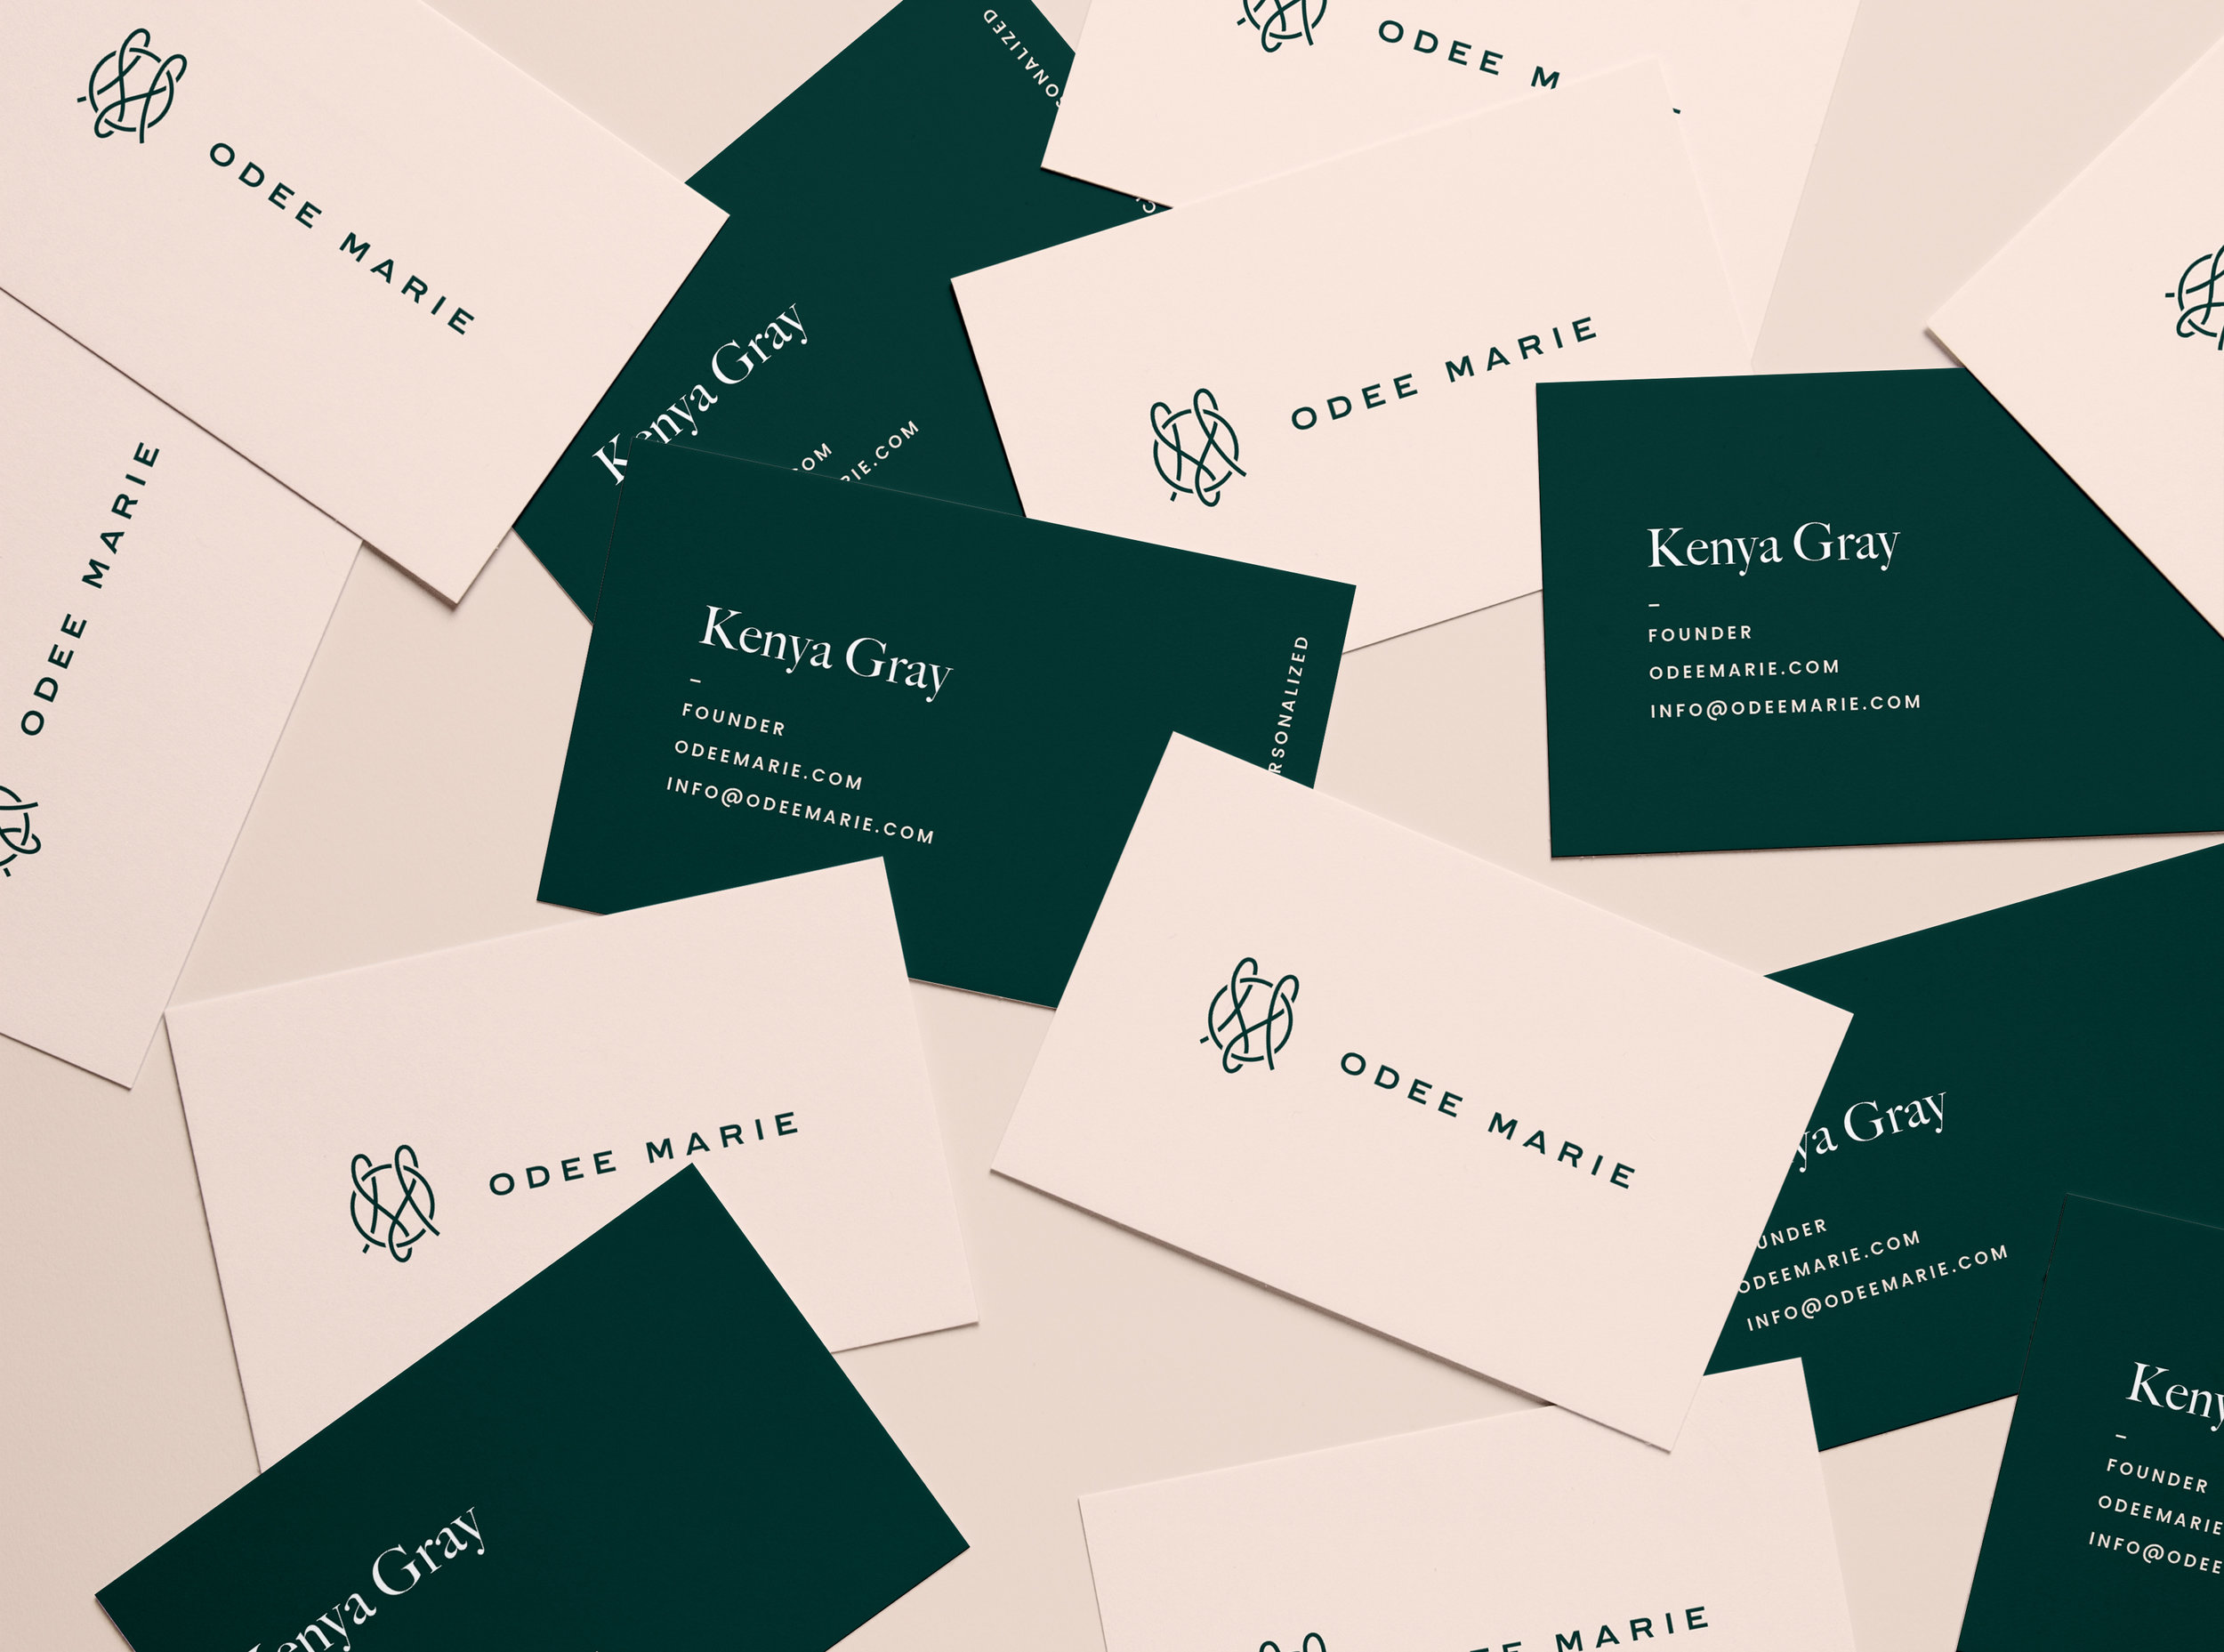 Odee-Marie-Business-Card